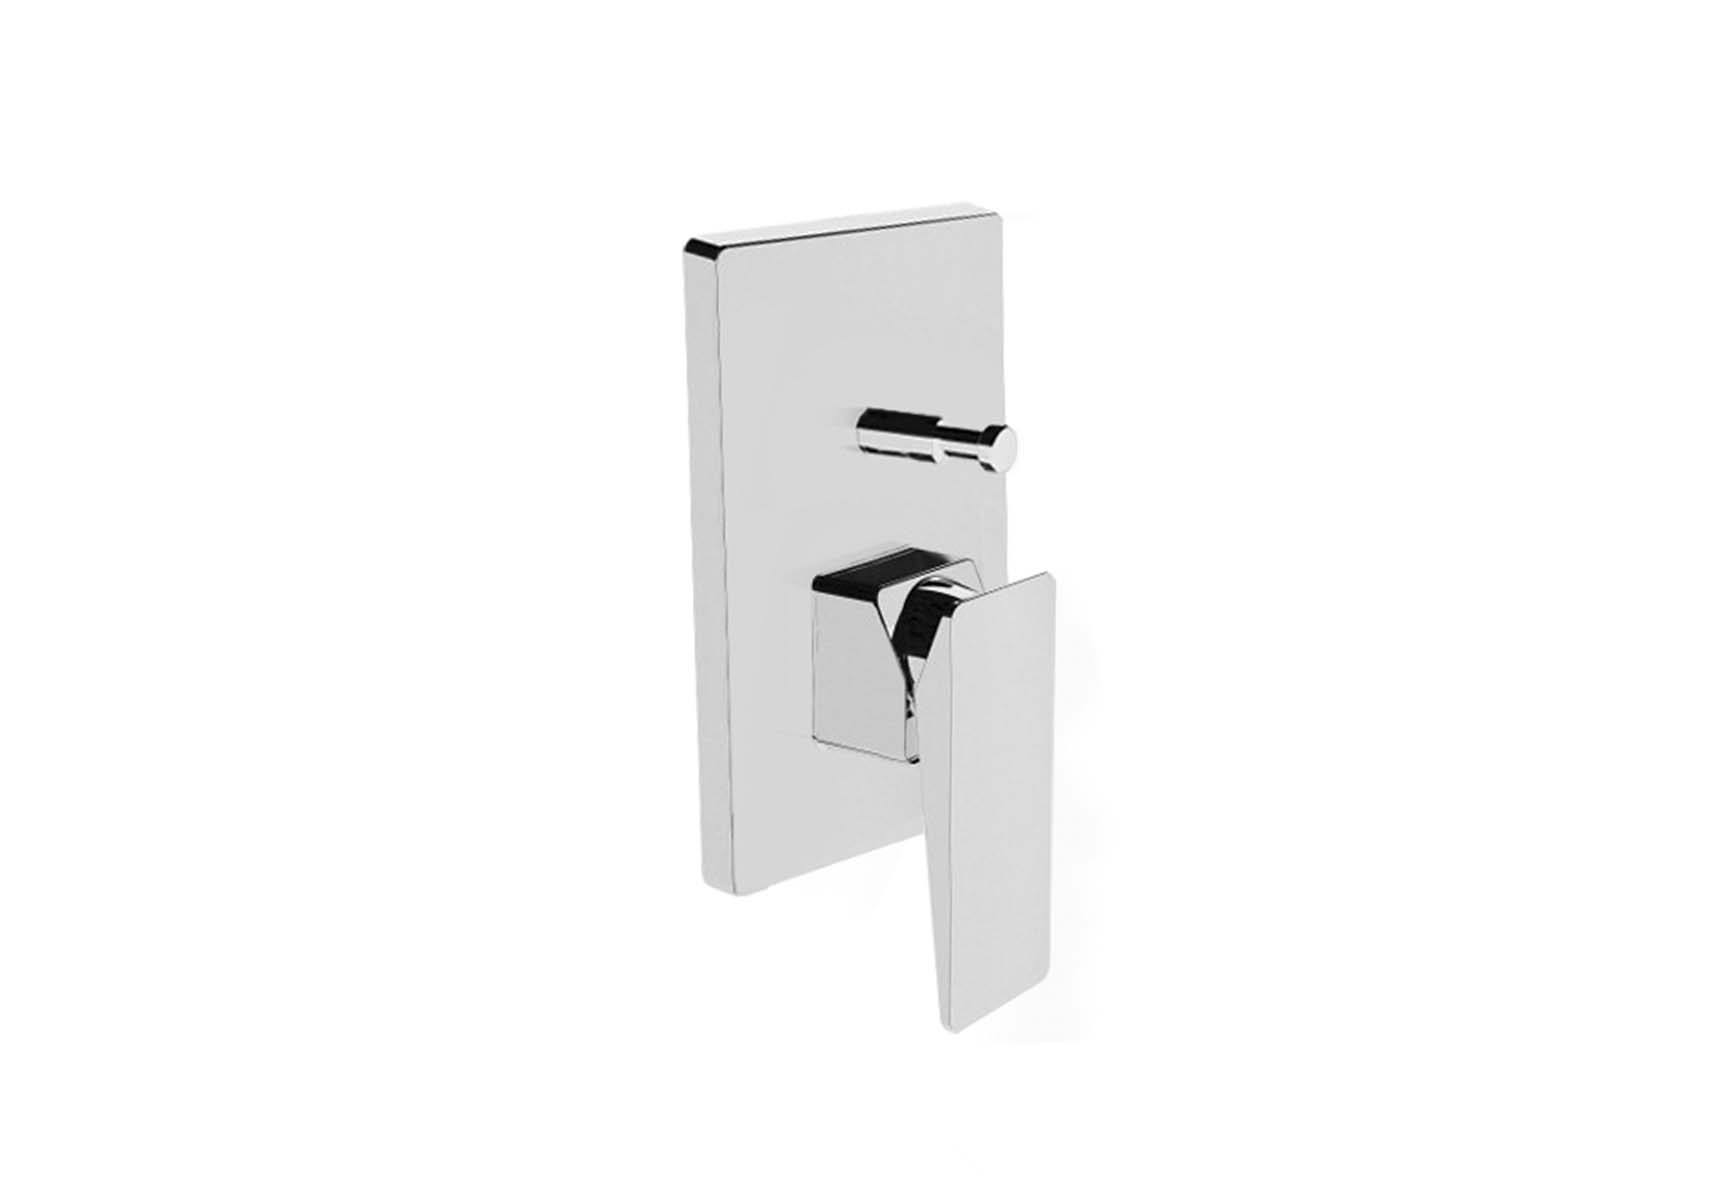 Brava Built-in Bath/Shower Mixer (Exposed Part)